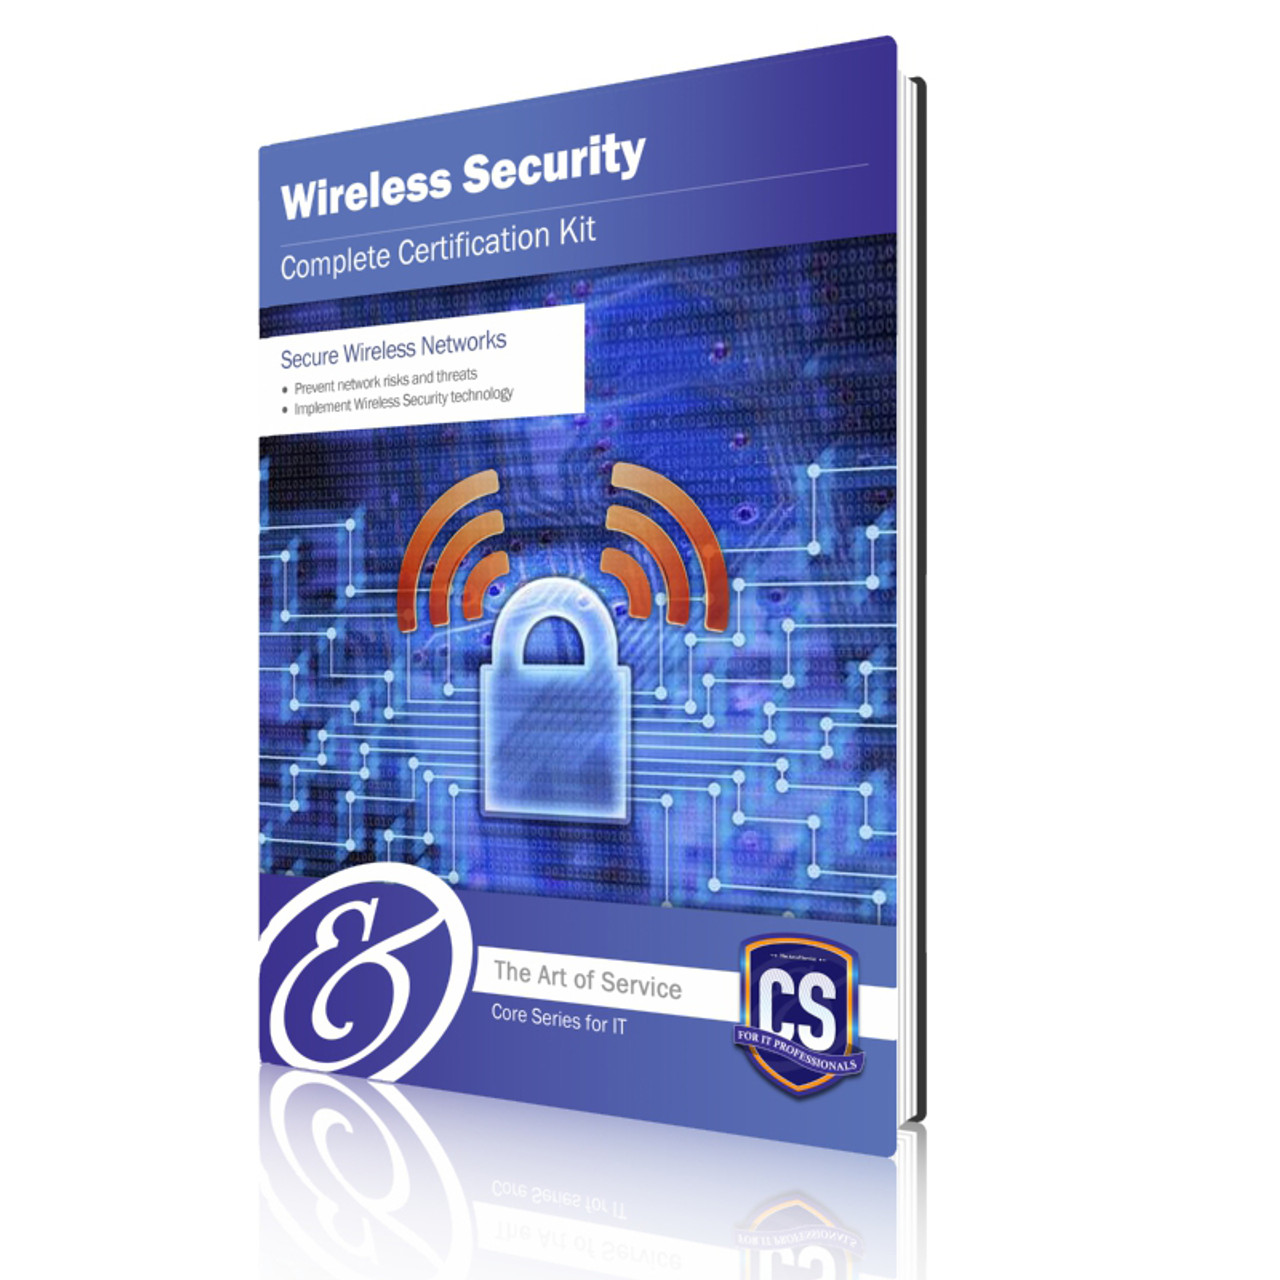 Wireless Security Complete Certification Kit Core Series For It